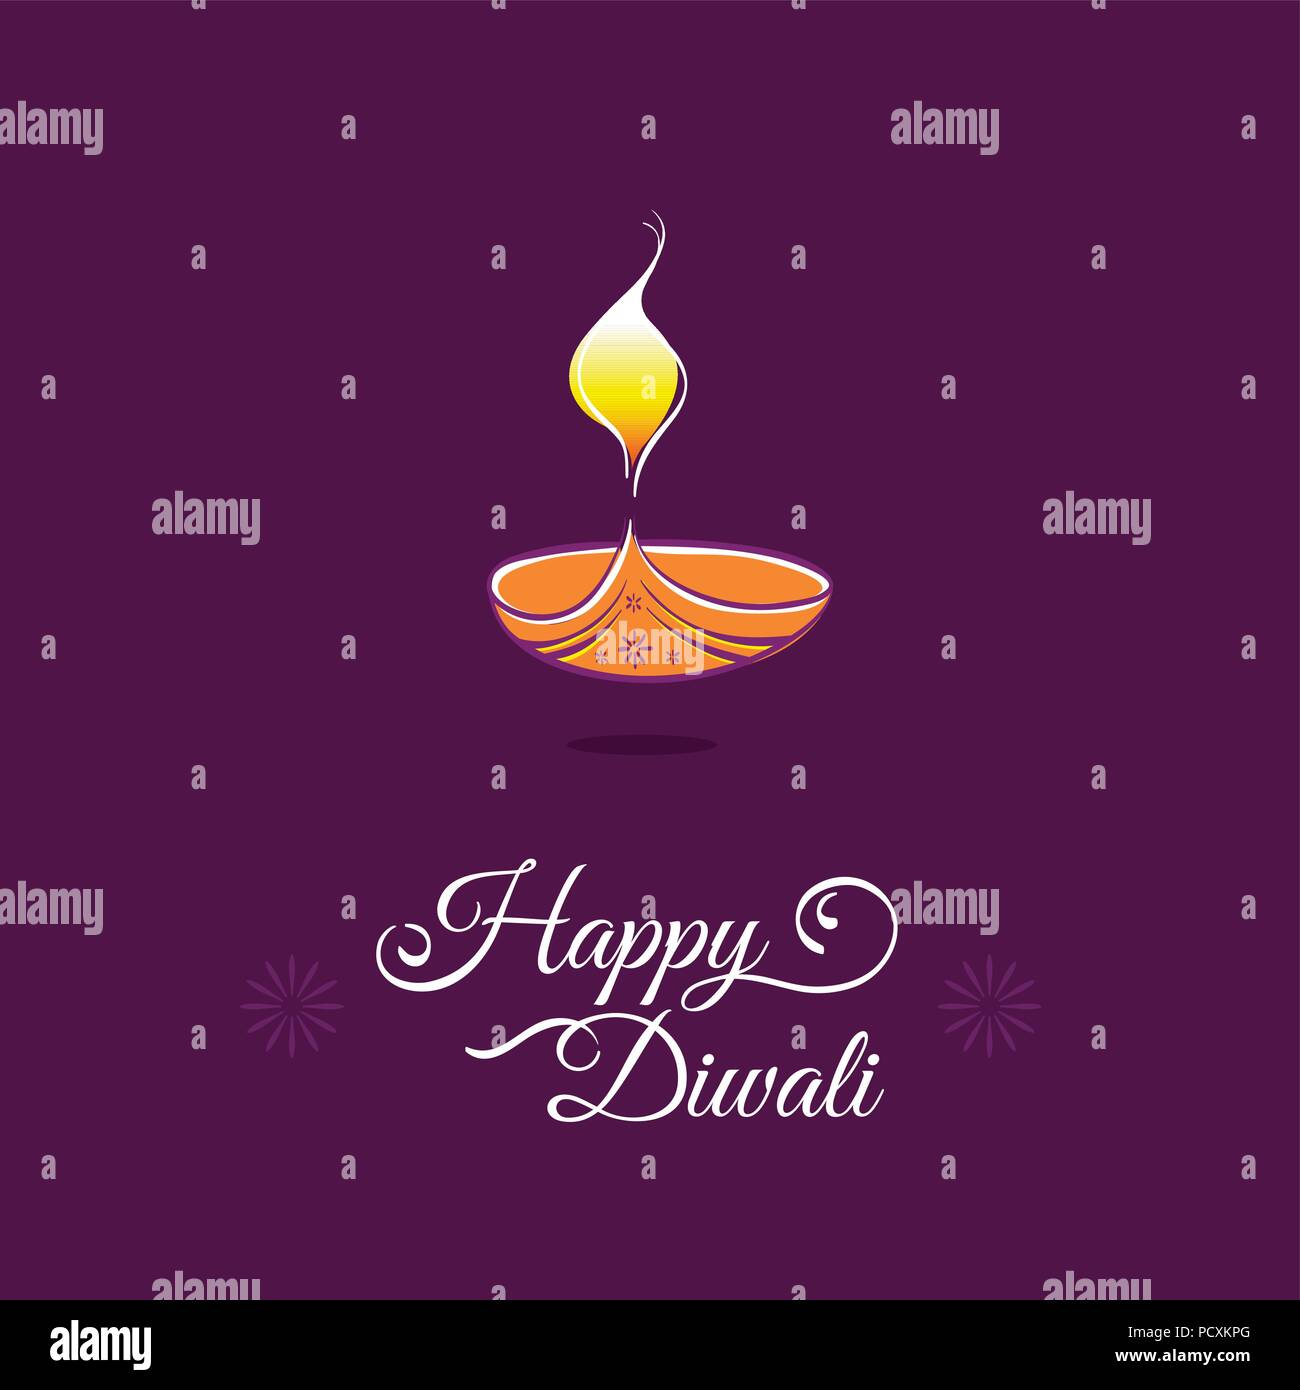 Diwali greeting card stock photos diwali greeting card stock diwali greeting card stock image m4hsunfo